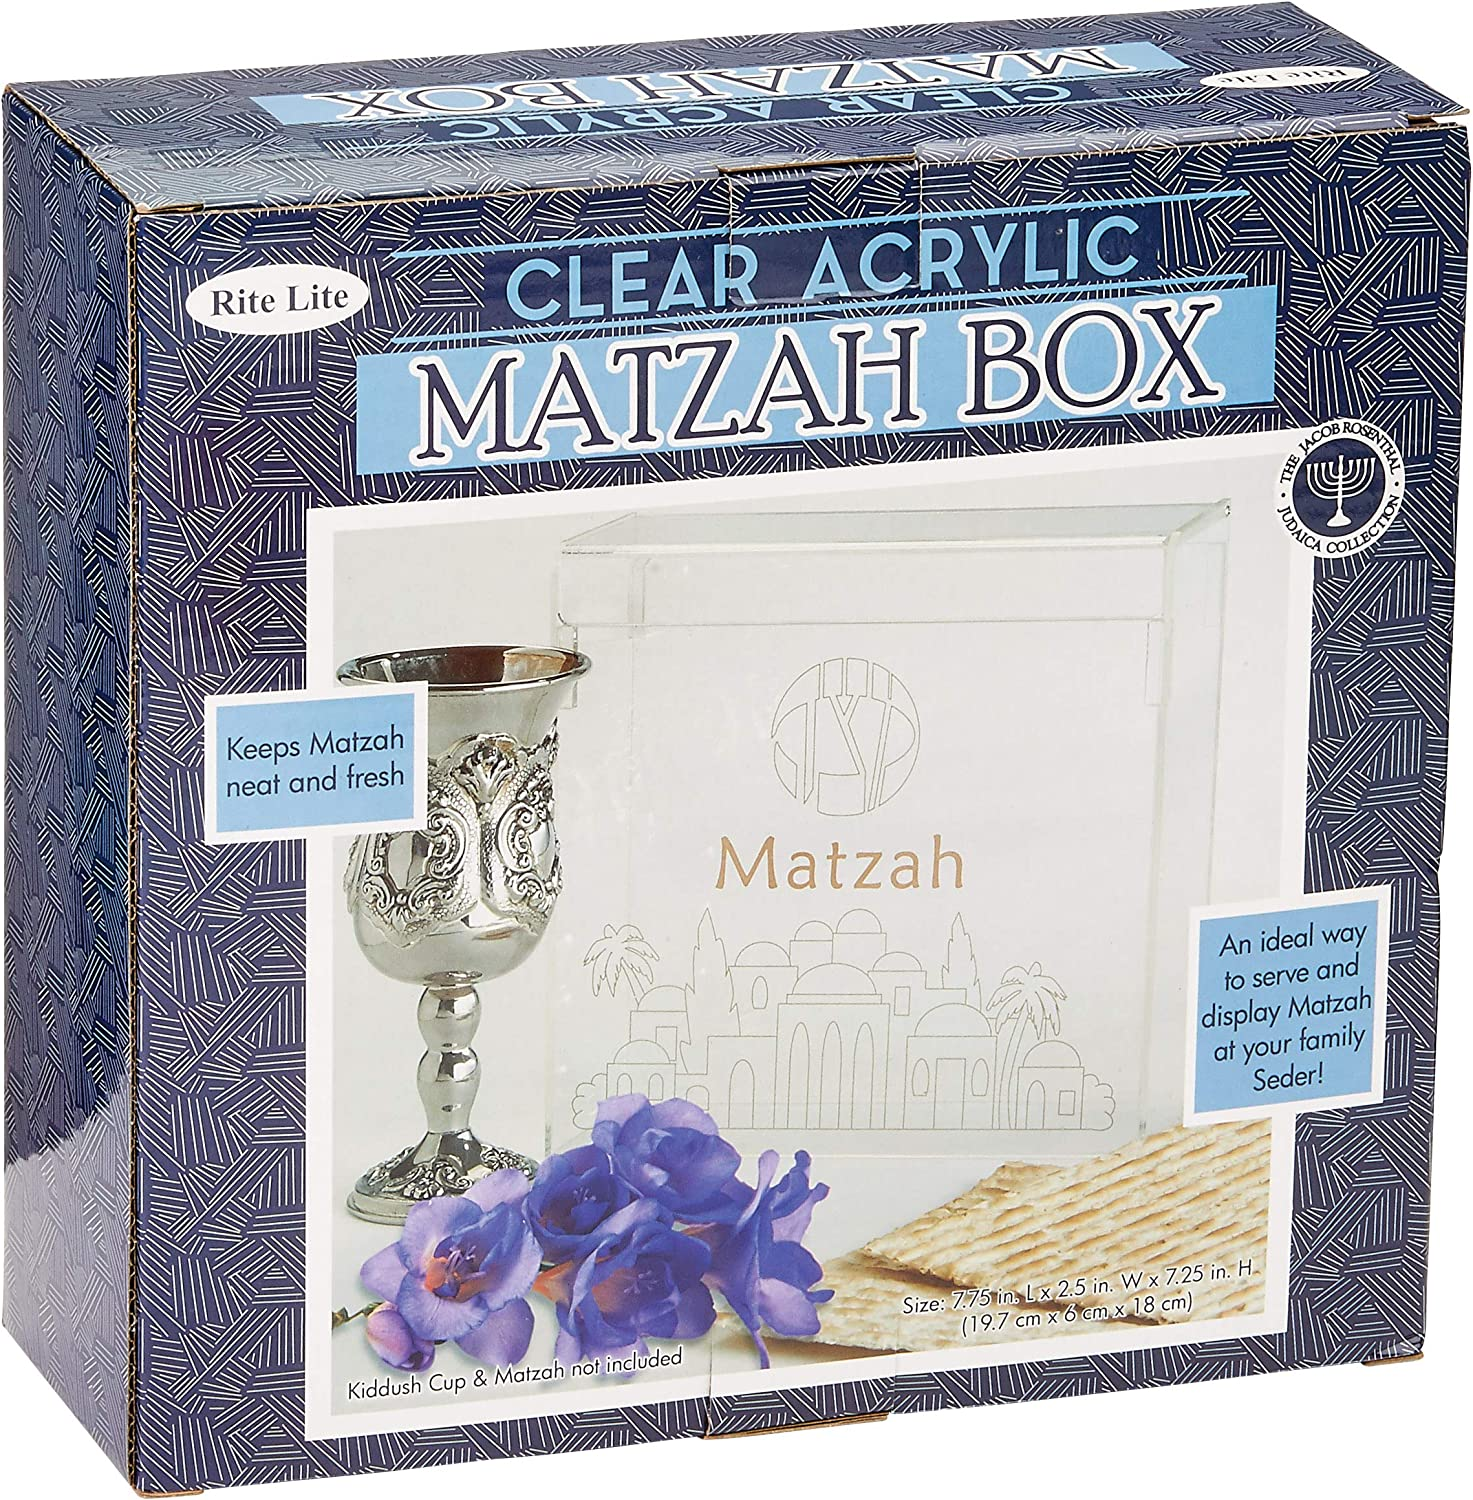 Rite Lite Passover Acrylic Flip Top Matzah Box Decor For Pesach/ Pesach Seder (1 Pack)